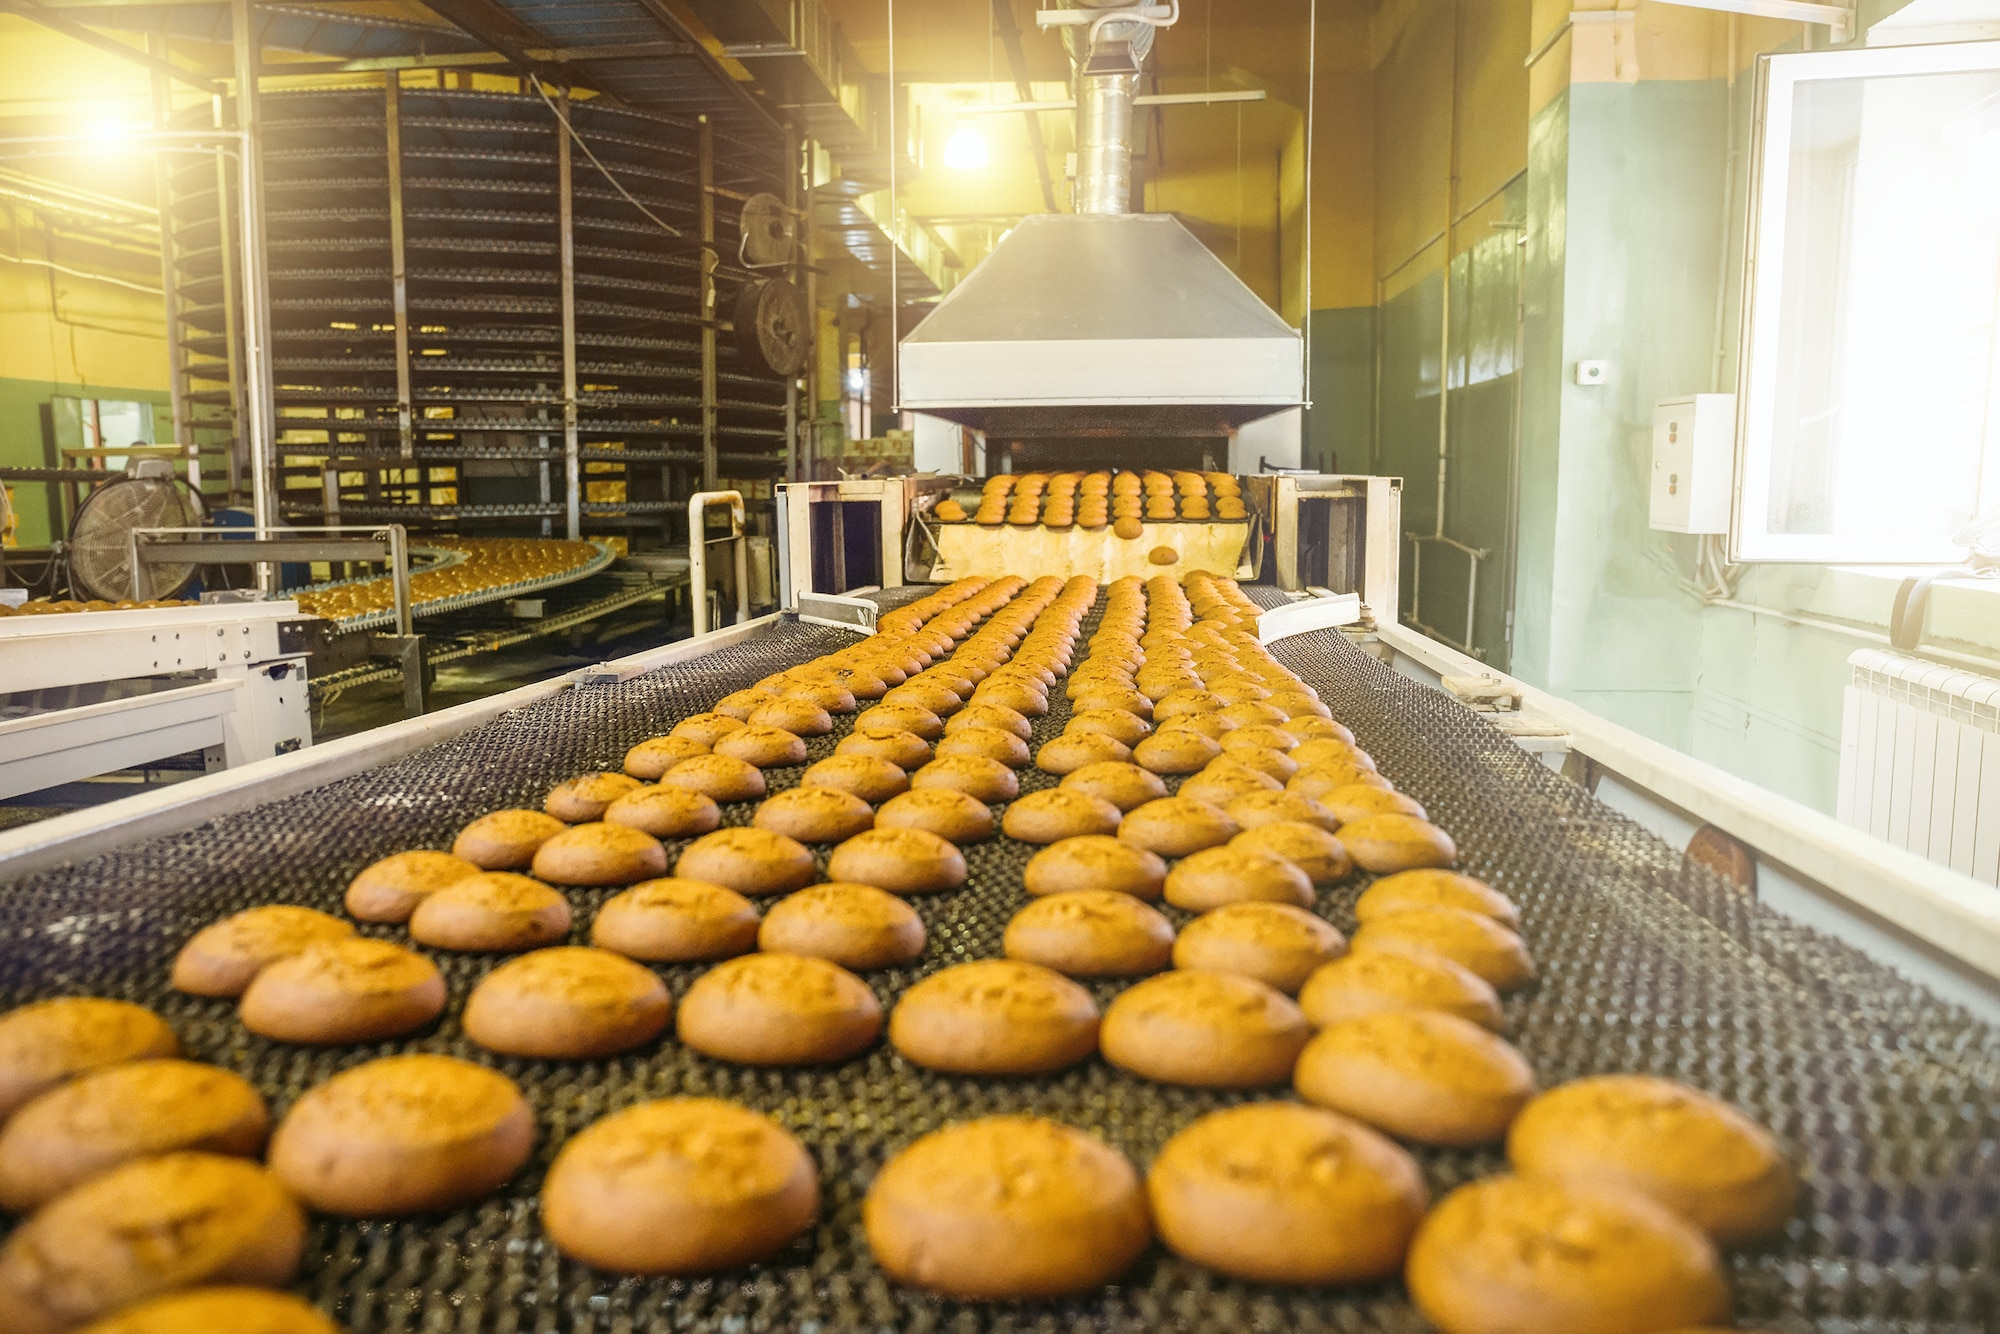 bakery products being transported on conveyor belt